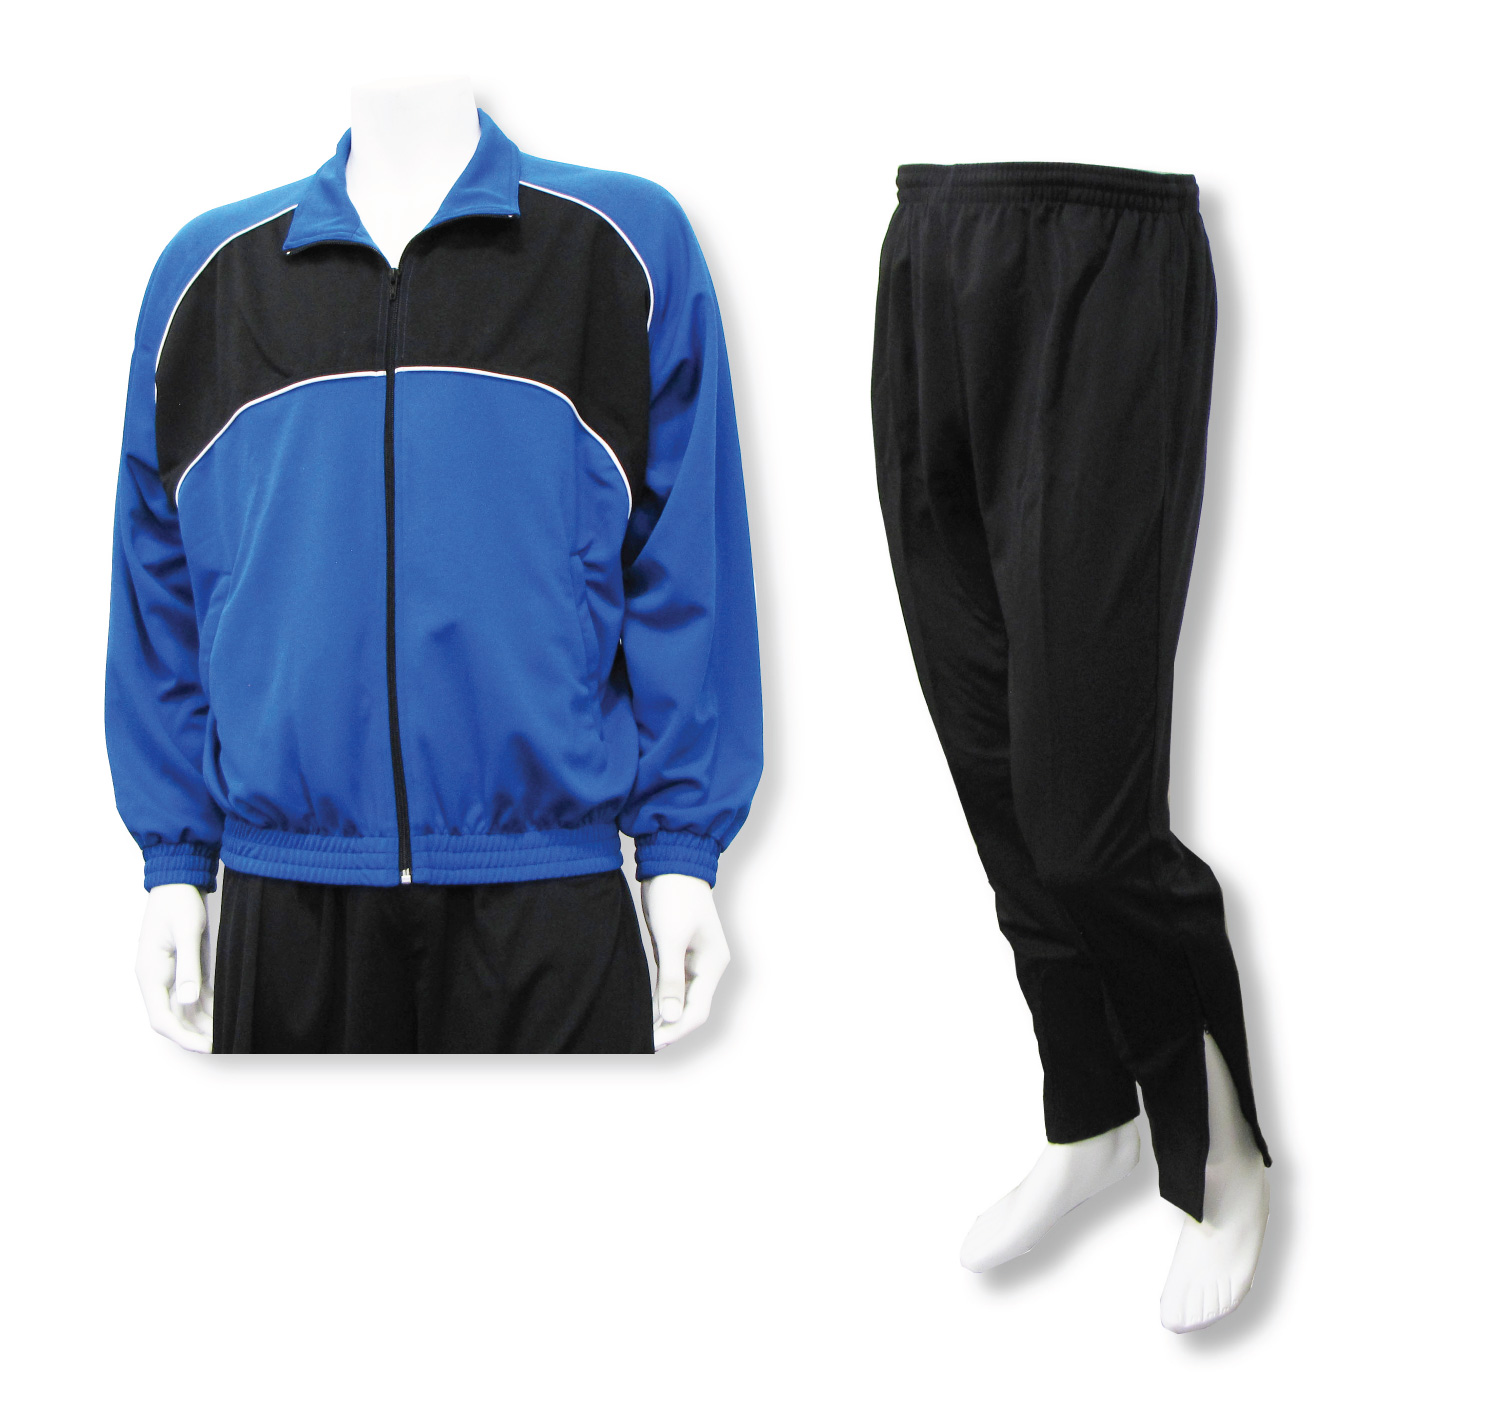 Crossfire soccer warmup set in royal and black by Code Four Athletics